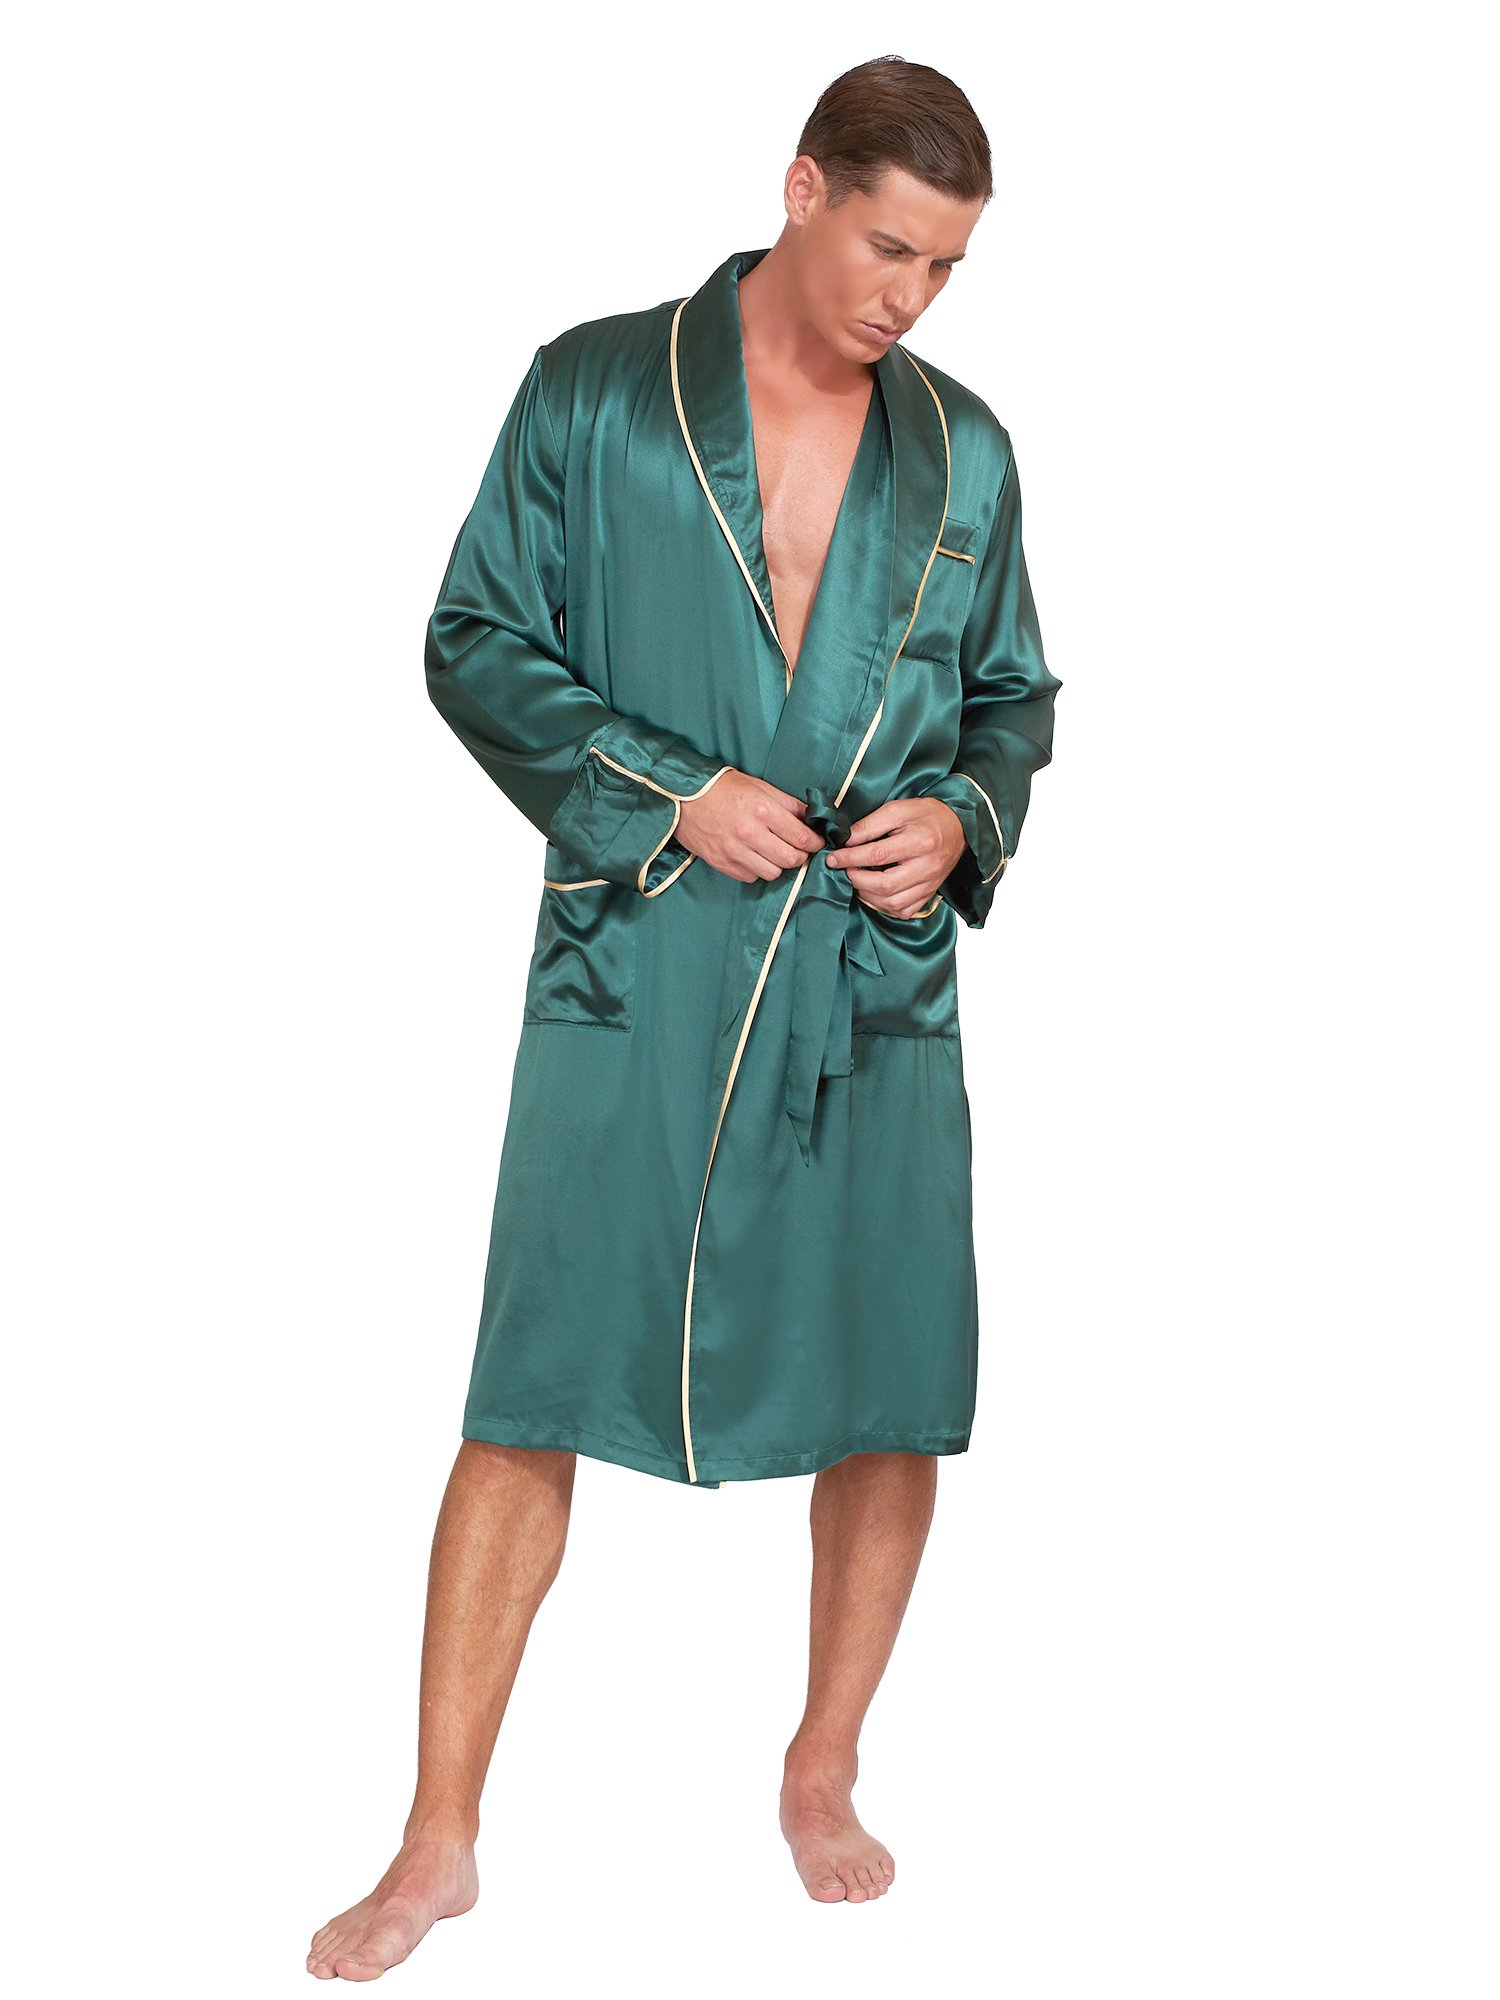 MYK 22 Momme 100% Pure Mulberry Silk Mens Lightweight Spa and Lounge Robe with Gift Box, Perfect for Fathers day, Large, Brandy